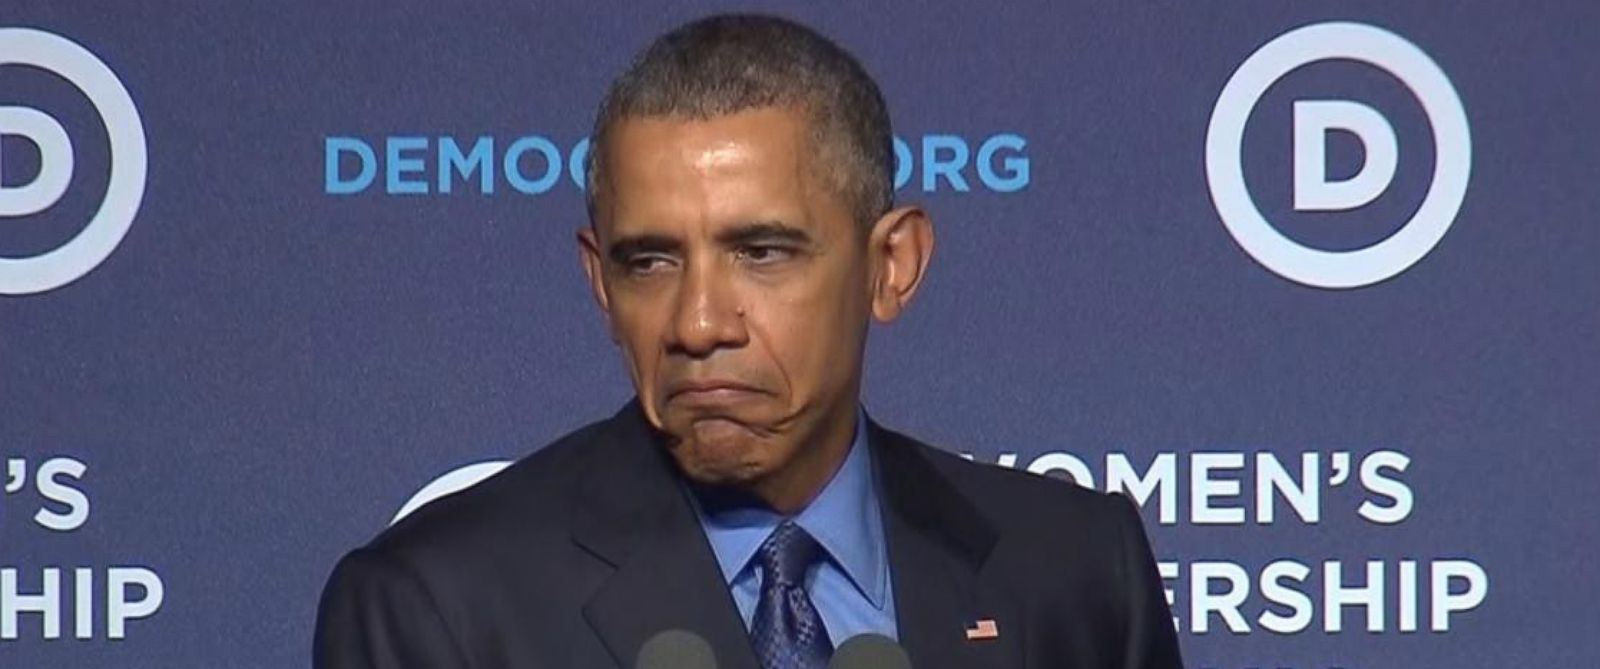 PHOTO: President Obama makes a face while speaking at the Democratic Womens Leadership Forum in Washington, D.C. on Oct. 23, 2015.